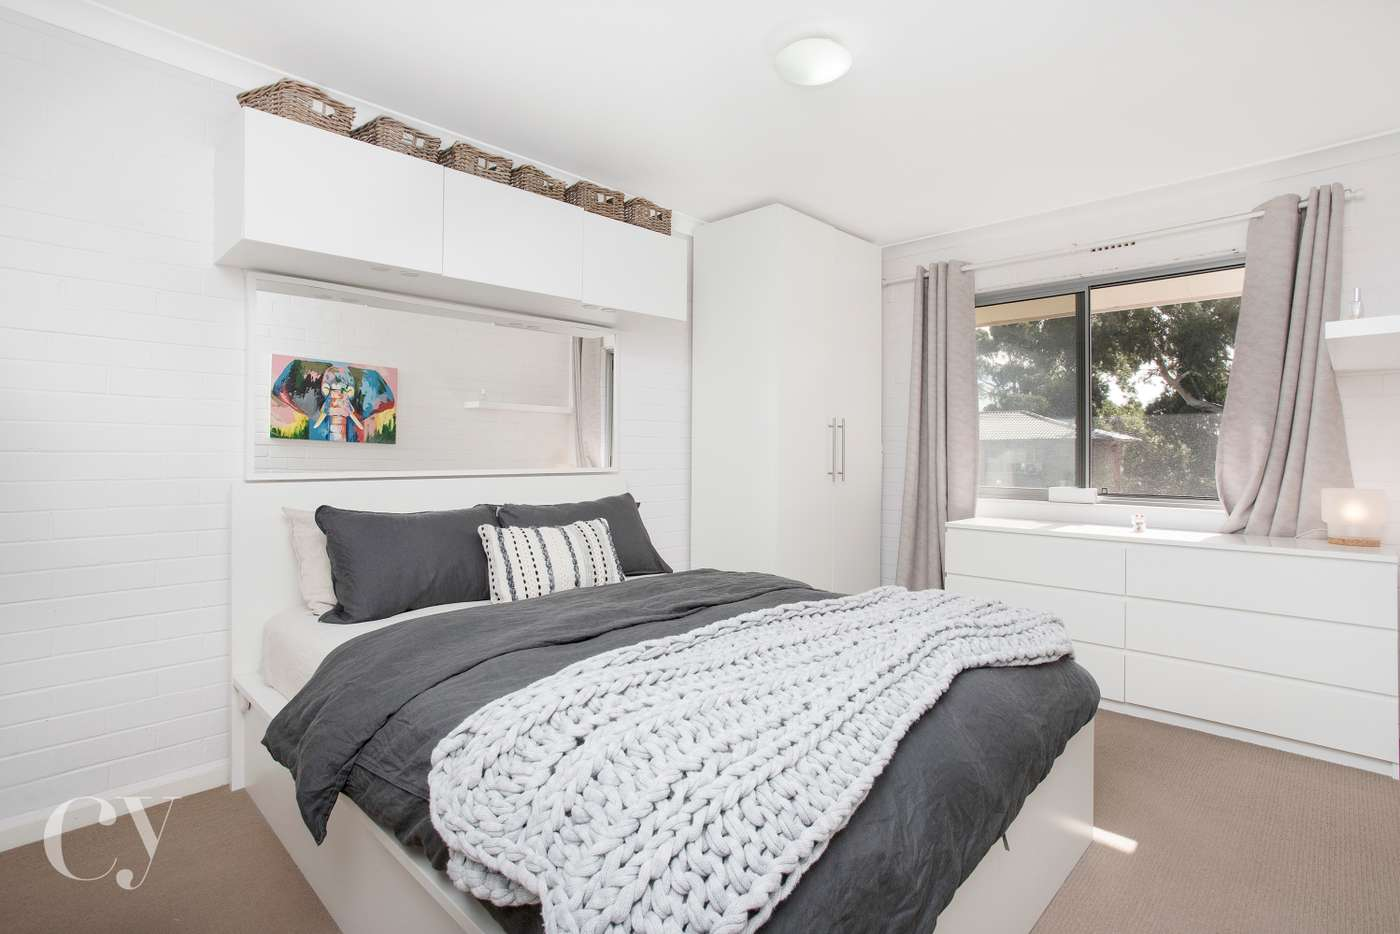 Fifth view of Homely apartment listing, 11/3 Cullen Street, Shenton Park WA 6008